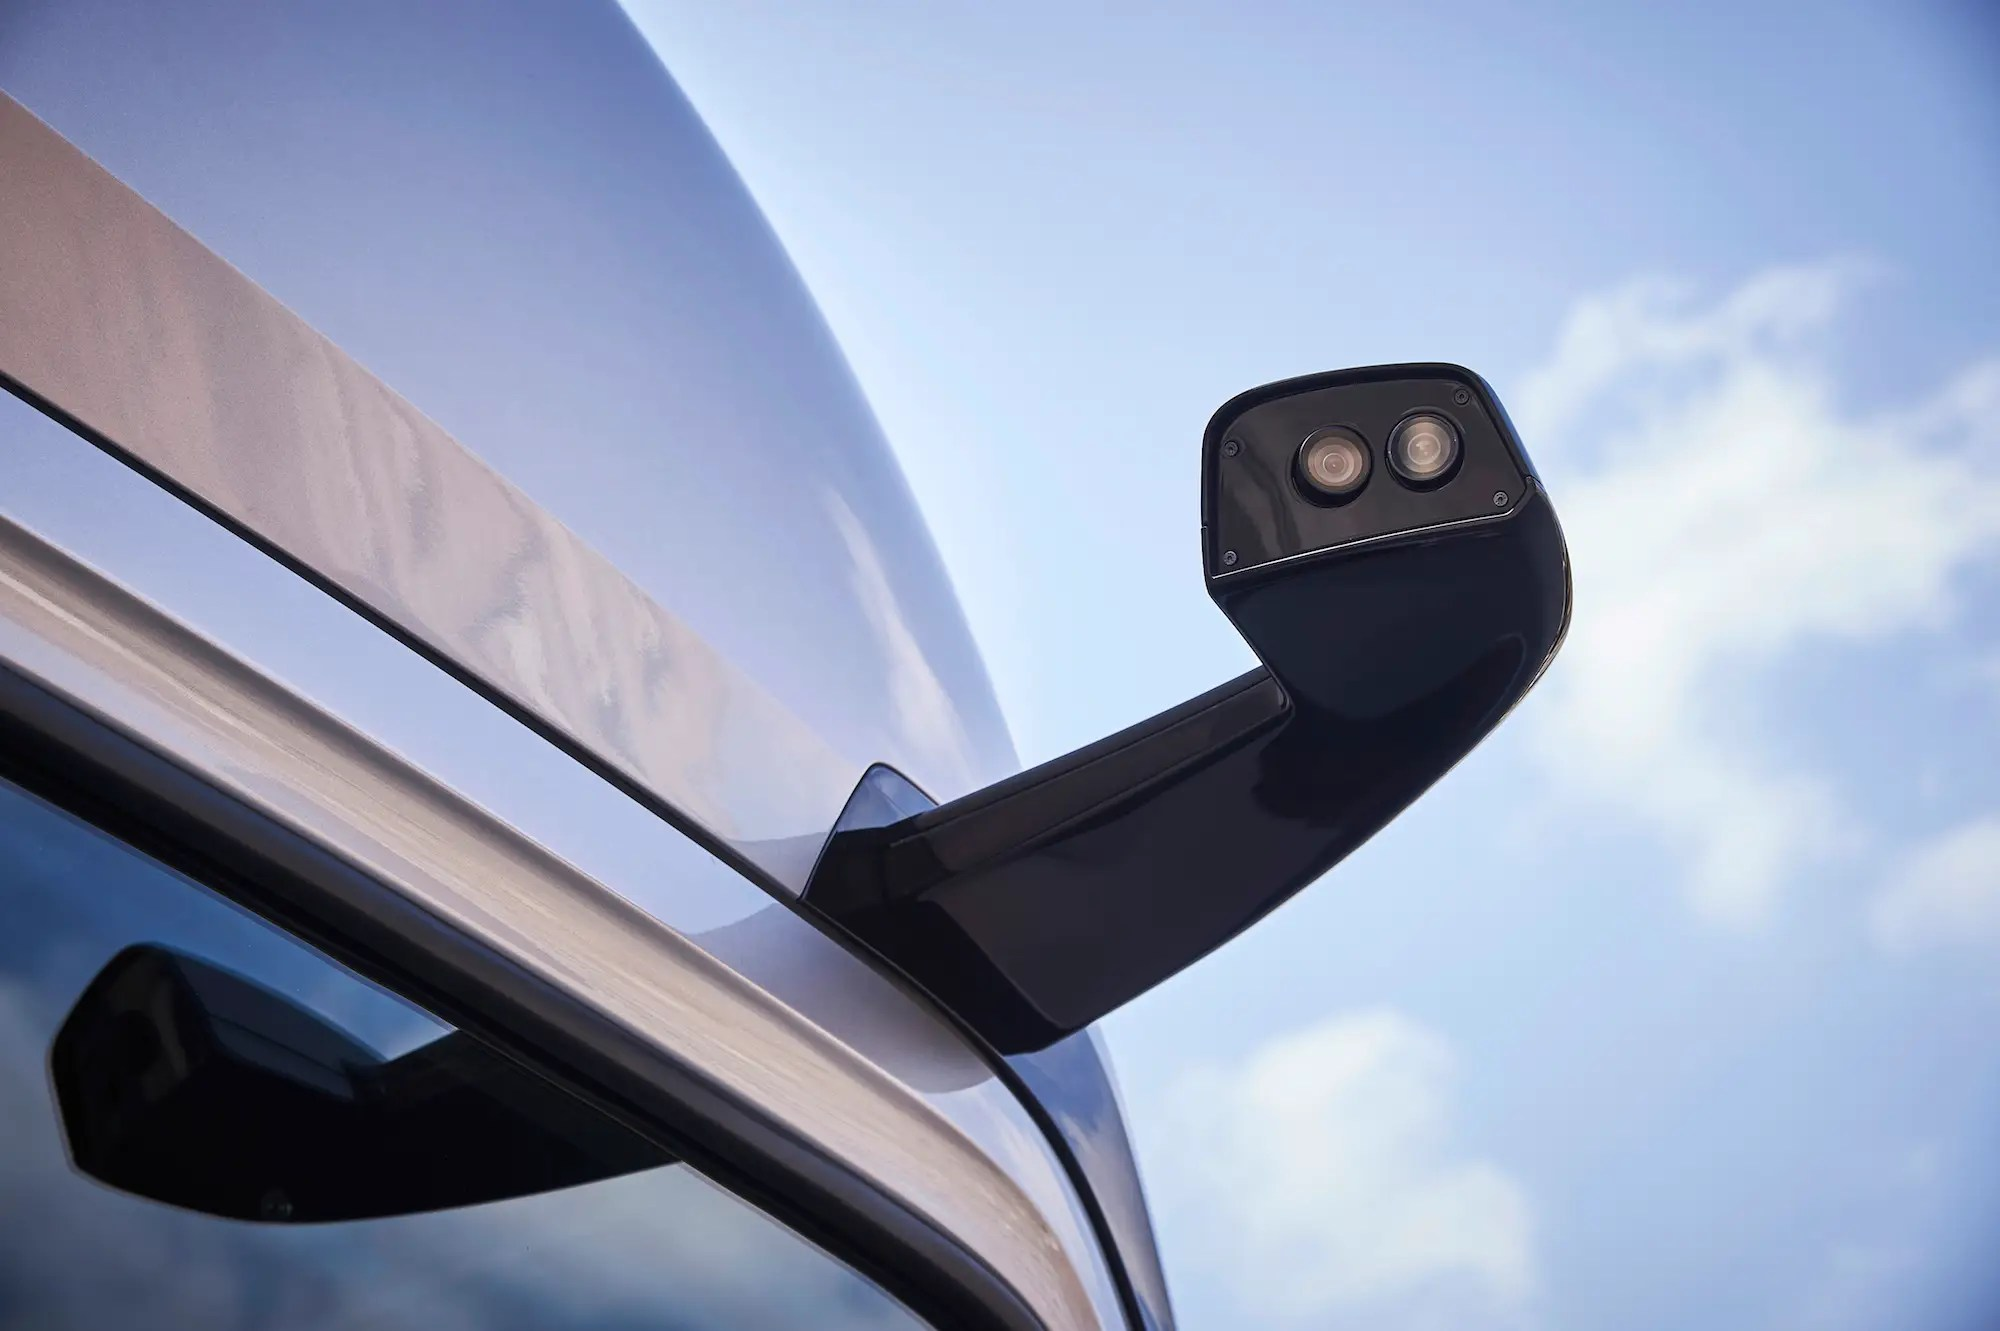 Mercedes opted to have cameras replace the sideview mirrors.